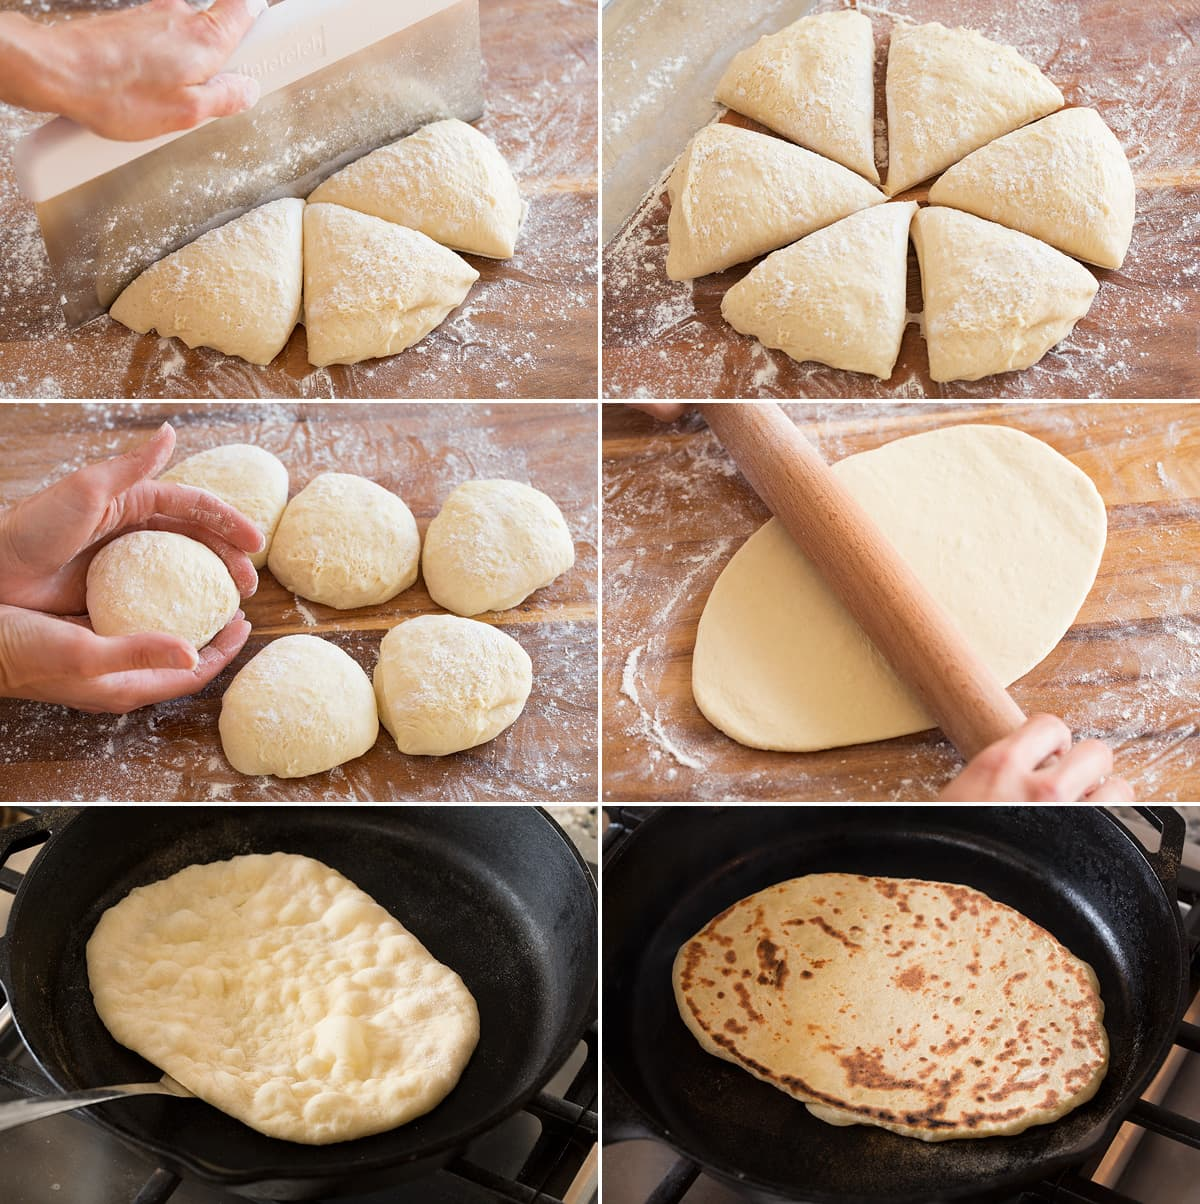 Steps 13 - 18 of shaping and rolling naan dough then cooking in skillet on both sides.